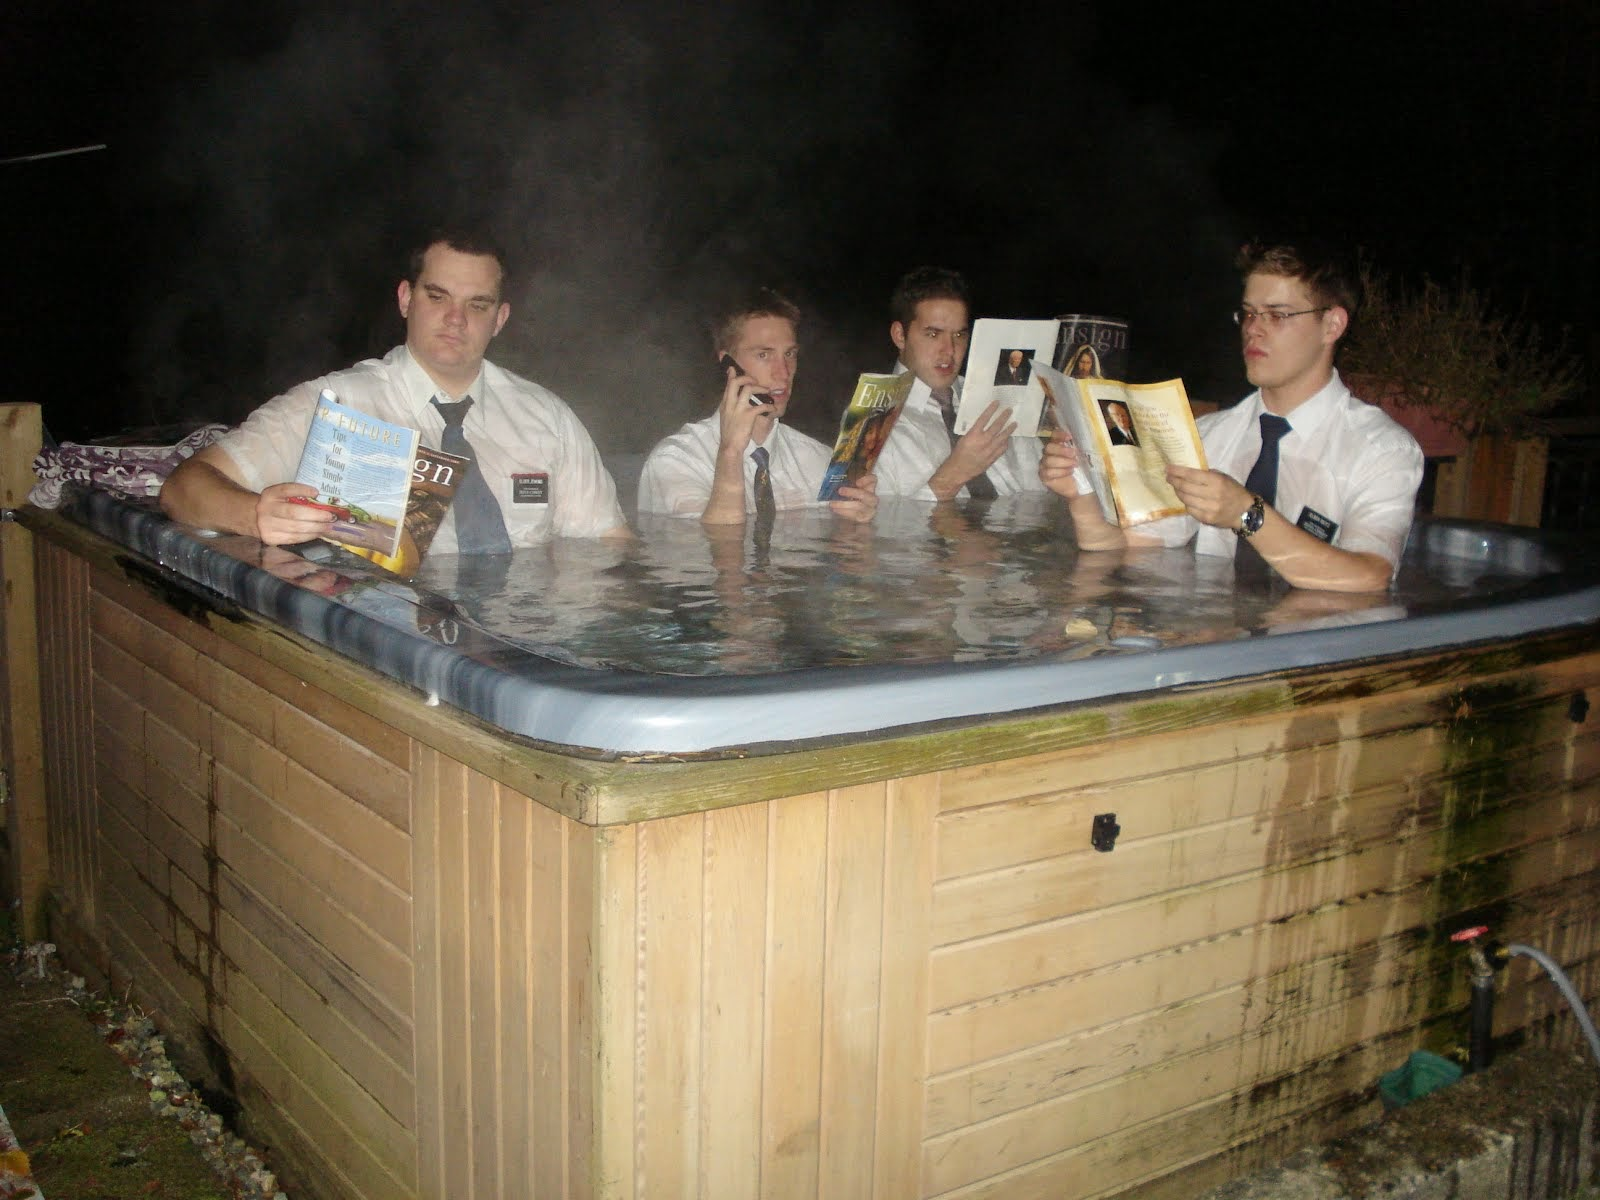 And that's how you hottub